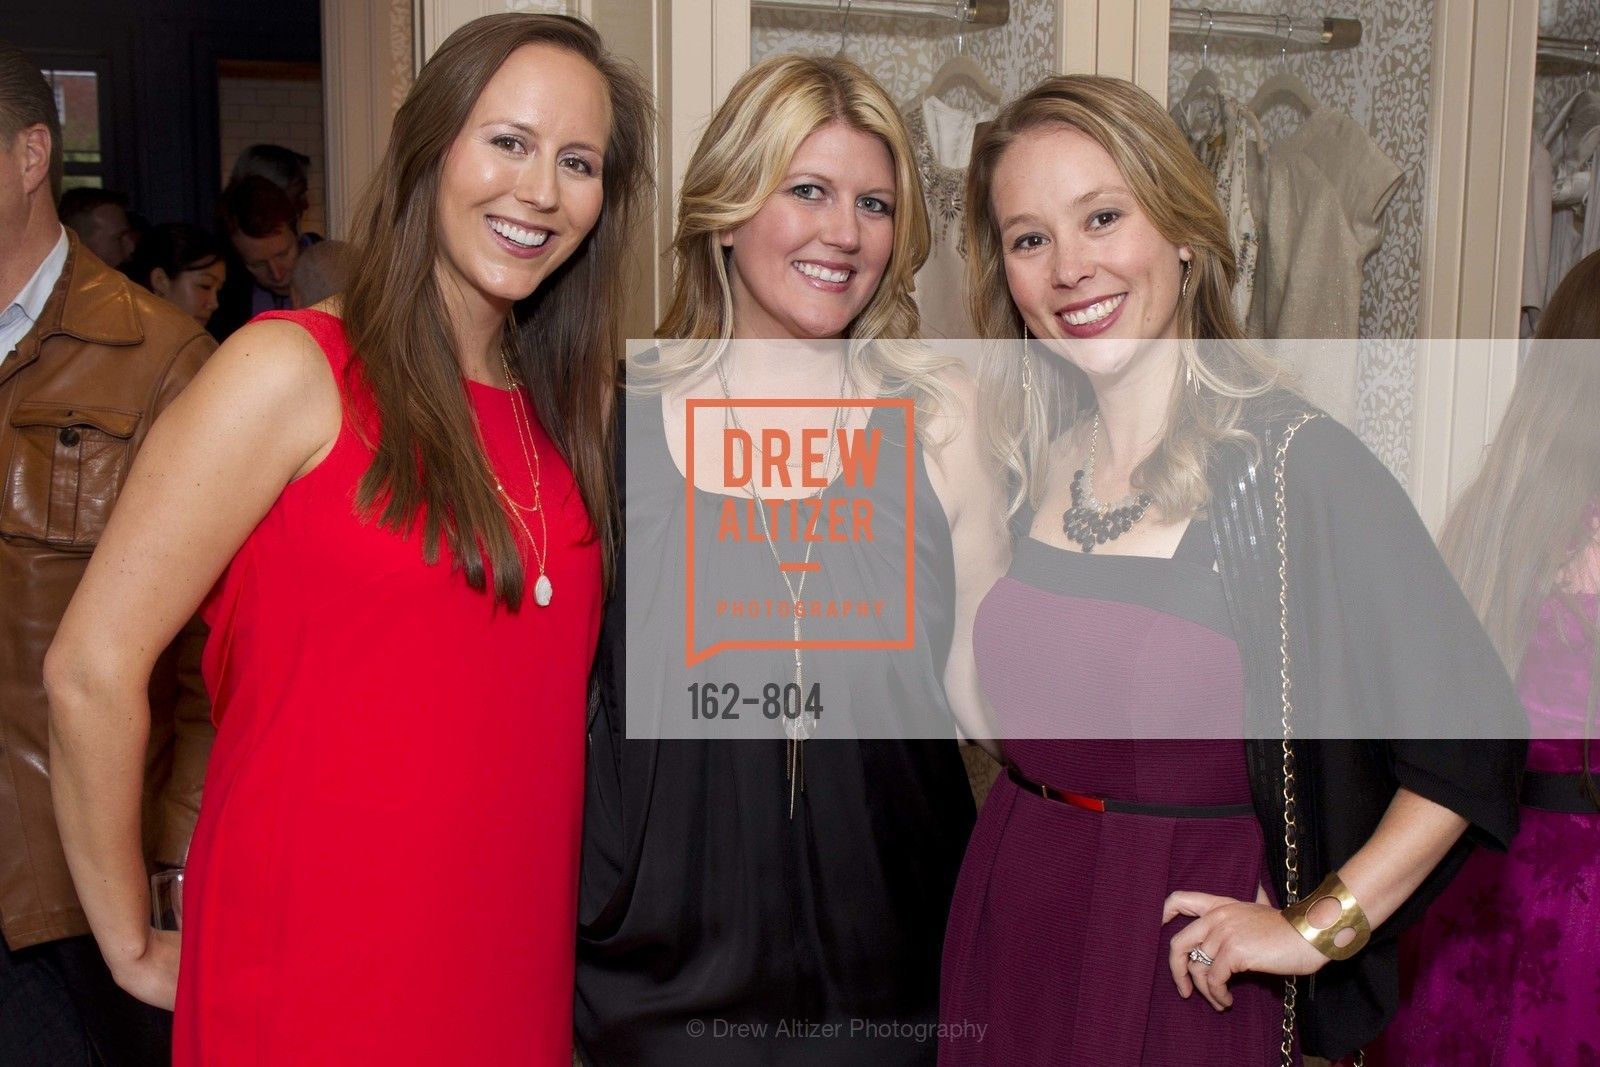 Elizabeth Hardy, Jen Grine, San Francisco Decorator Showcase Opening Night Party, US, April 25th, 2015,Drew Altizer, Drew Altizer Photography, full-service event agency, private events, San Francisco photographer, photographer California